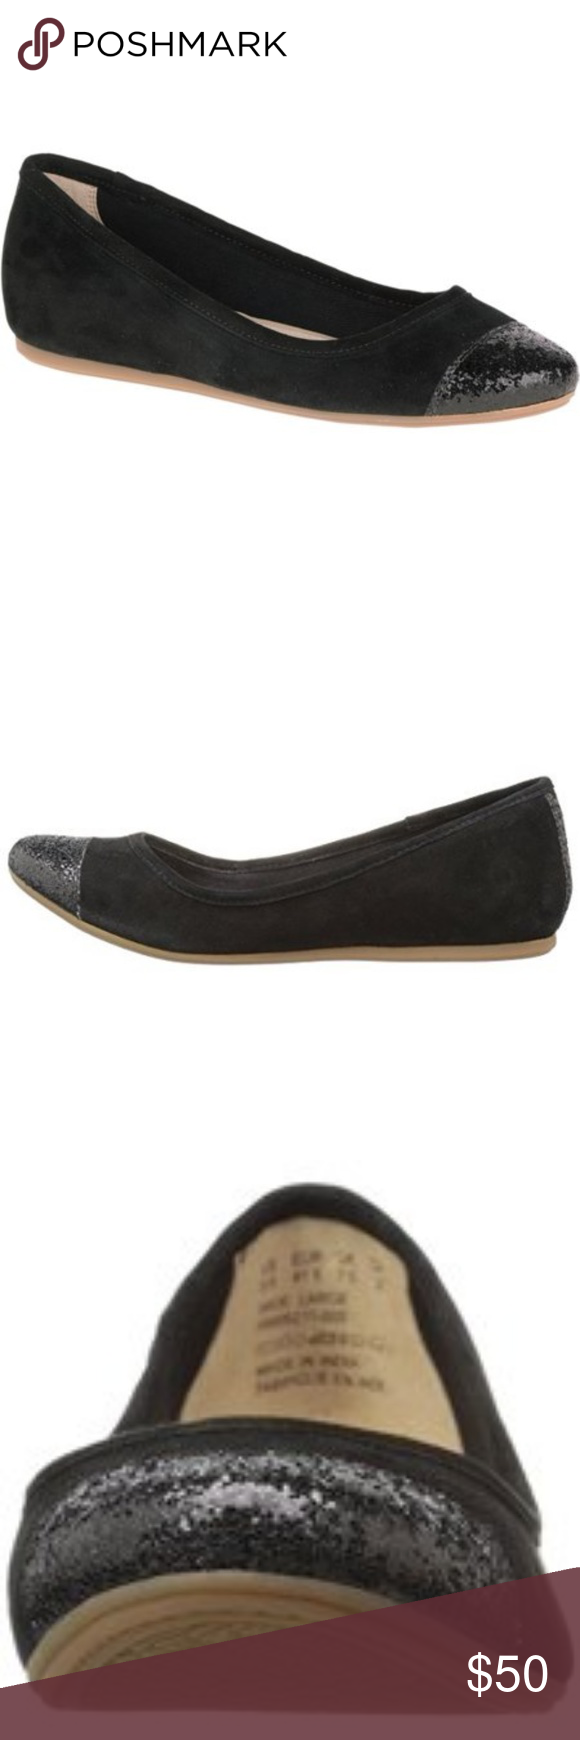 Hush Puppies Women's Happee Heather Flat, Black Boutique